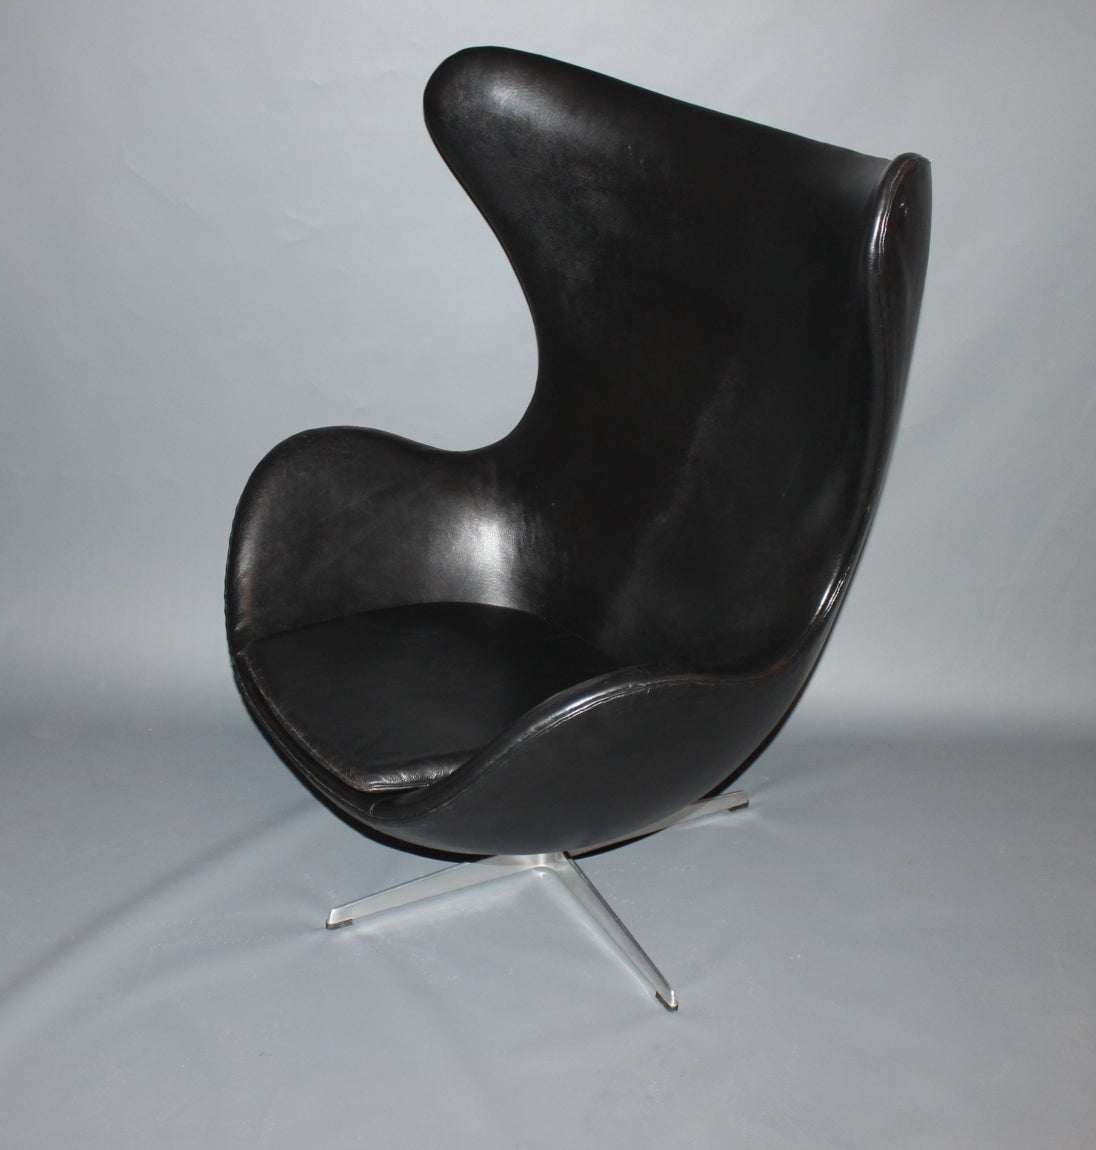 arne jacobsen egg chair with original upholstery by fritz hansen circa 1963 at 1stdibs. Black Bedroom Furniture Sets. Home Design Ideas